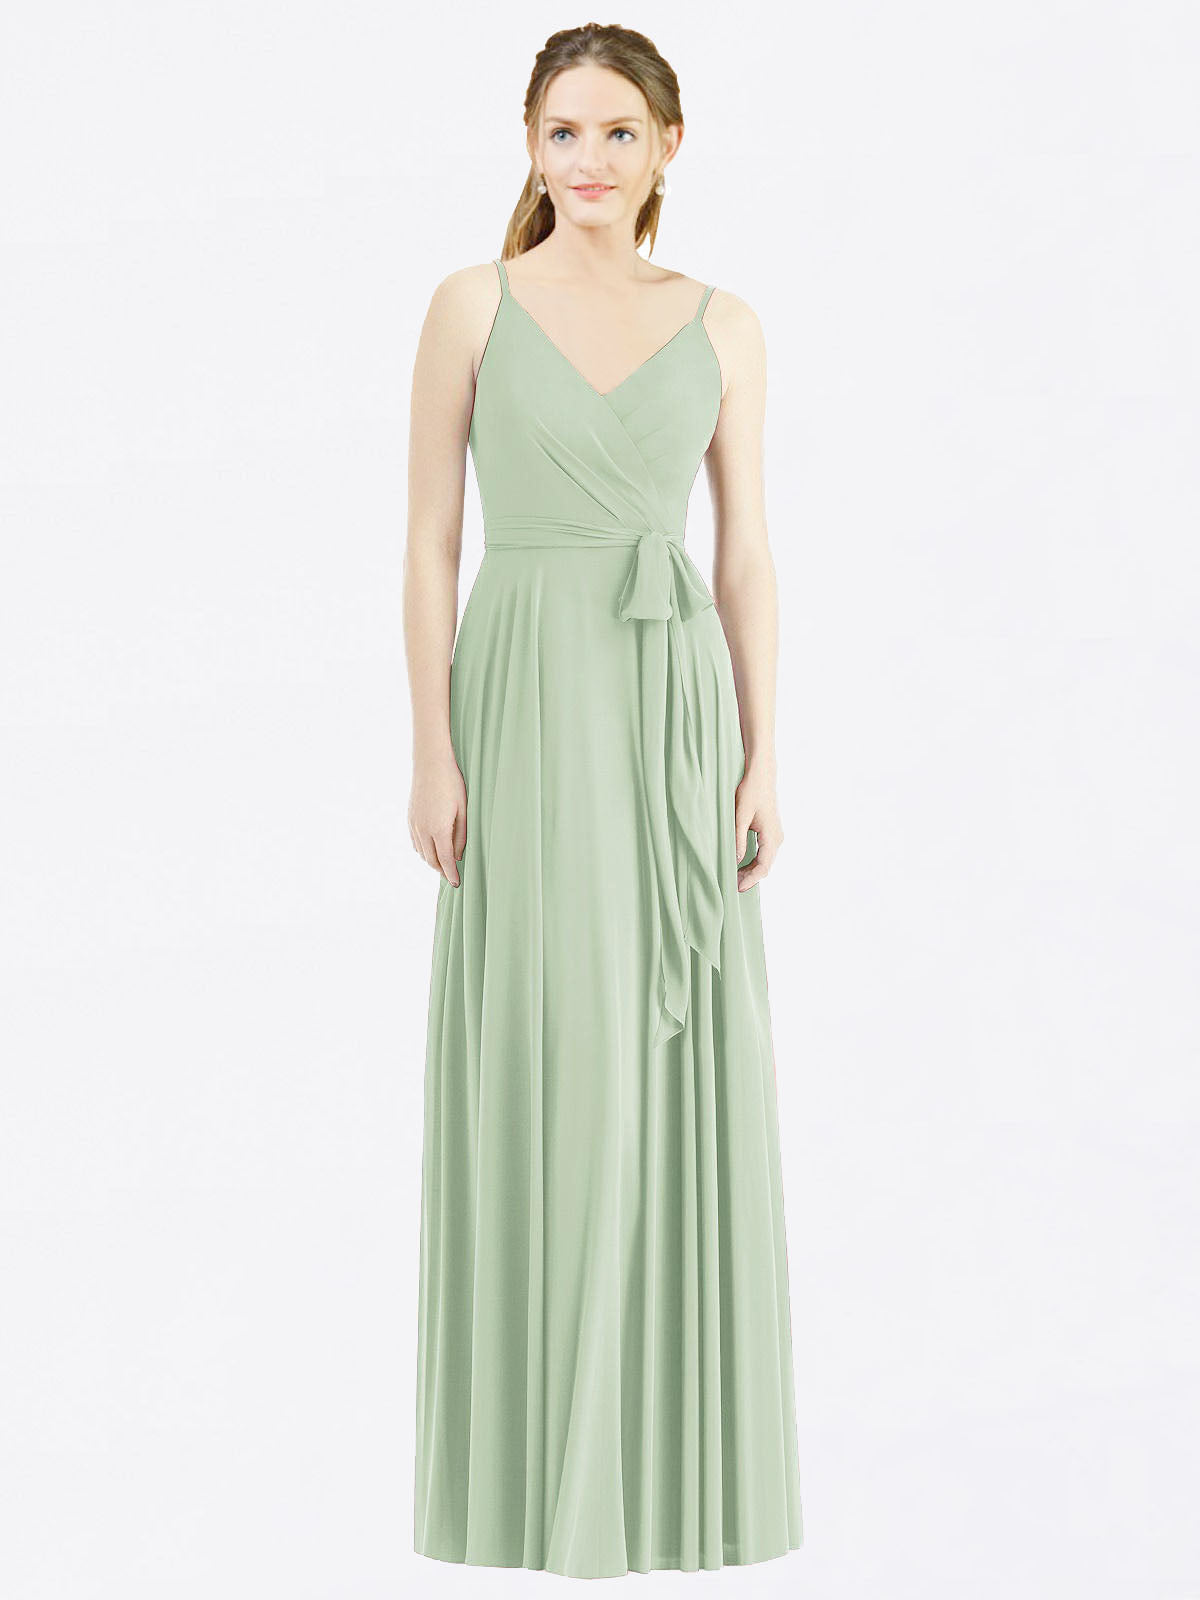 Long A-Line Spaghetti Straps, V-Neck Sleeveless Sage Chiffon Bridesmaid Dress Madilyn